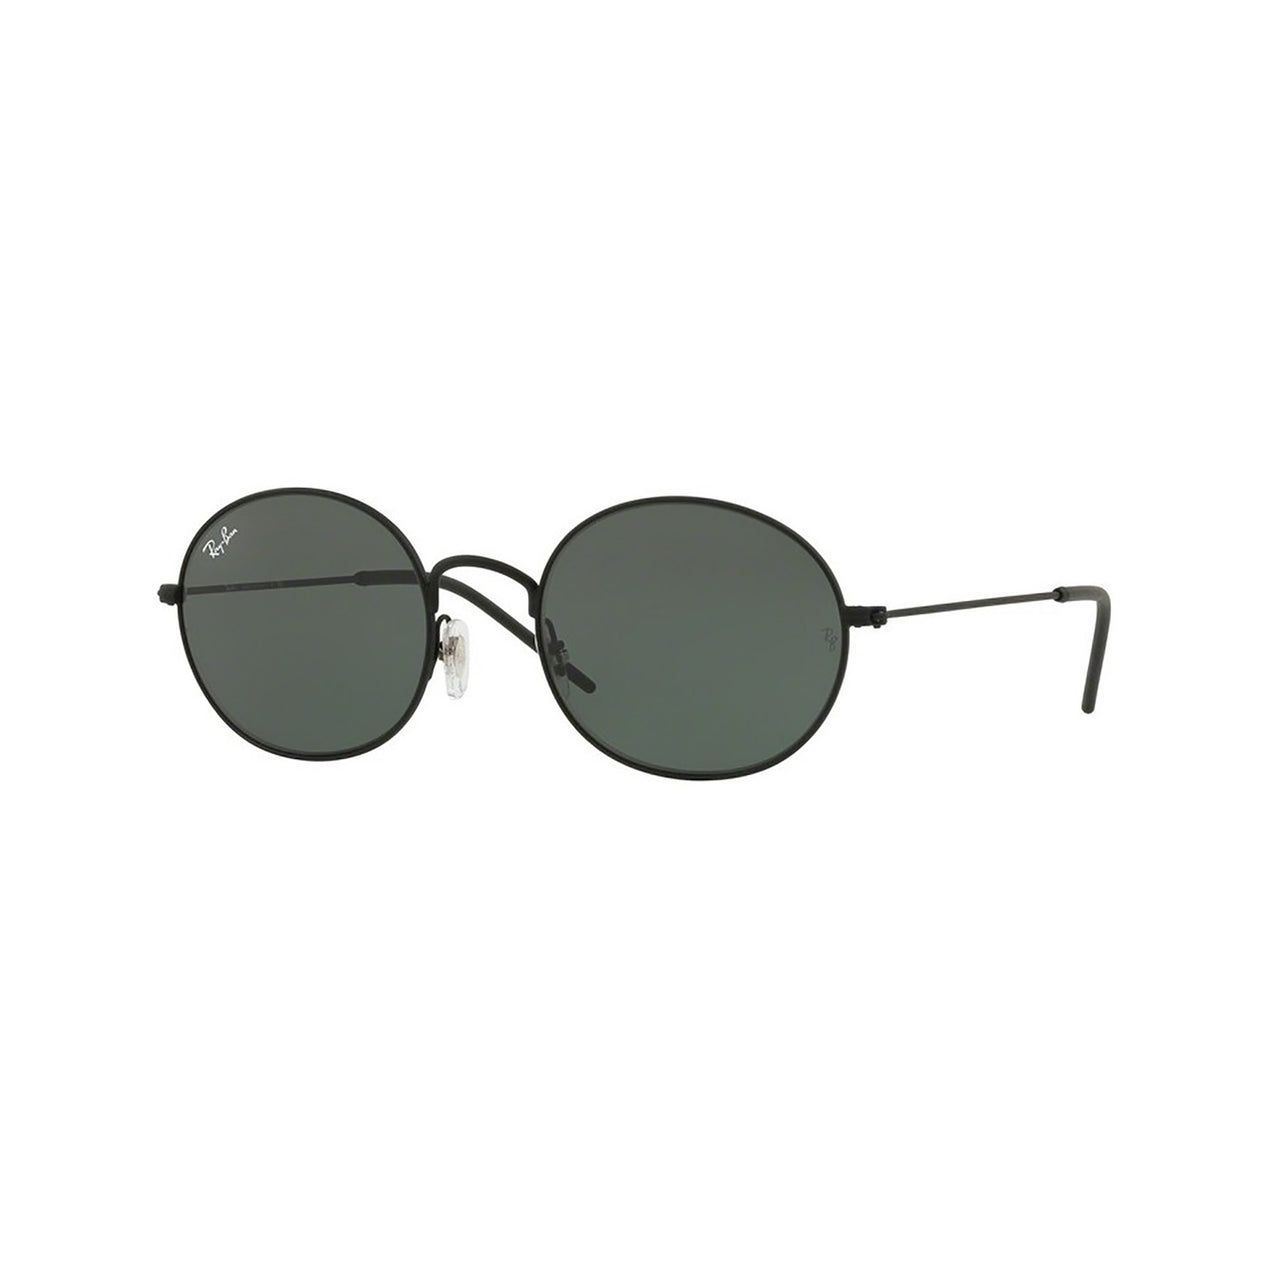 Ray Ban Rb3594 Sunglasses - Black Rubber Frame - Green Lens ...